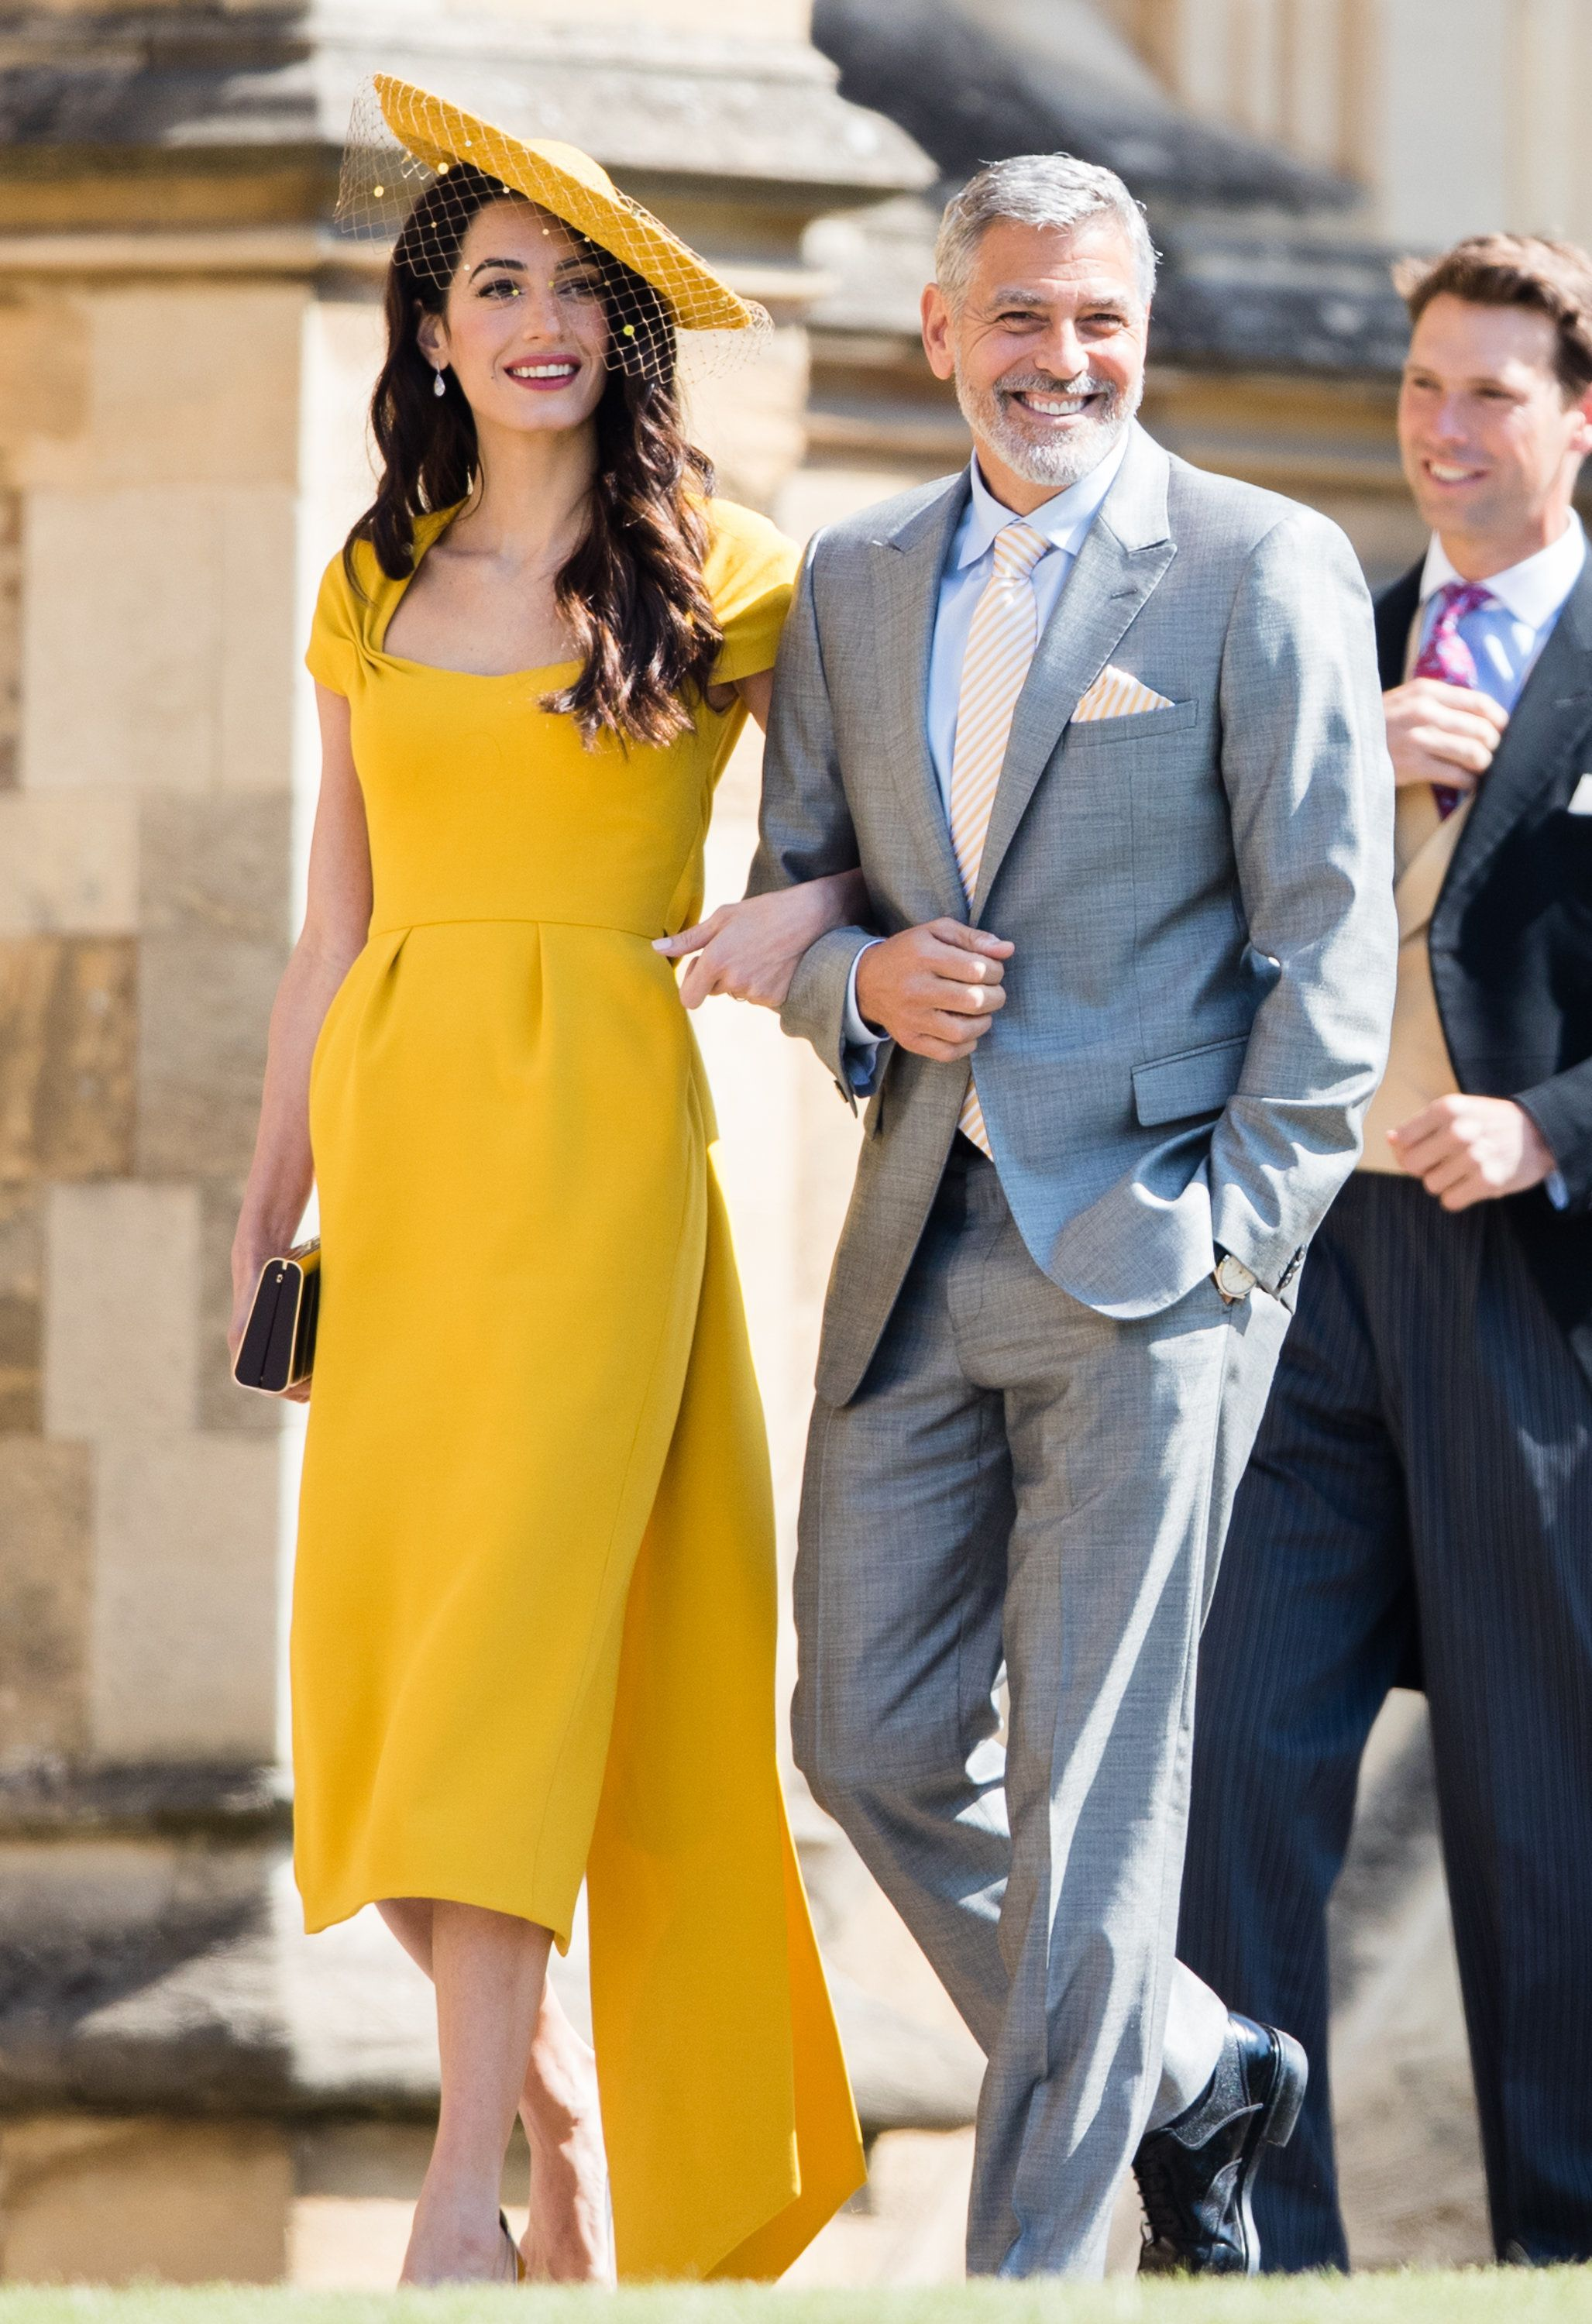 9e4bdb7abbda Here's Why Amal Clooney Royal Wedding Outfit Cost Over Half A Million  Dollars